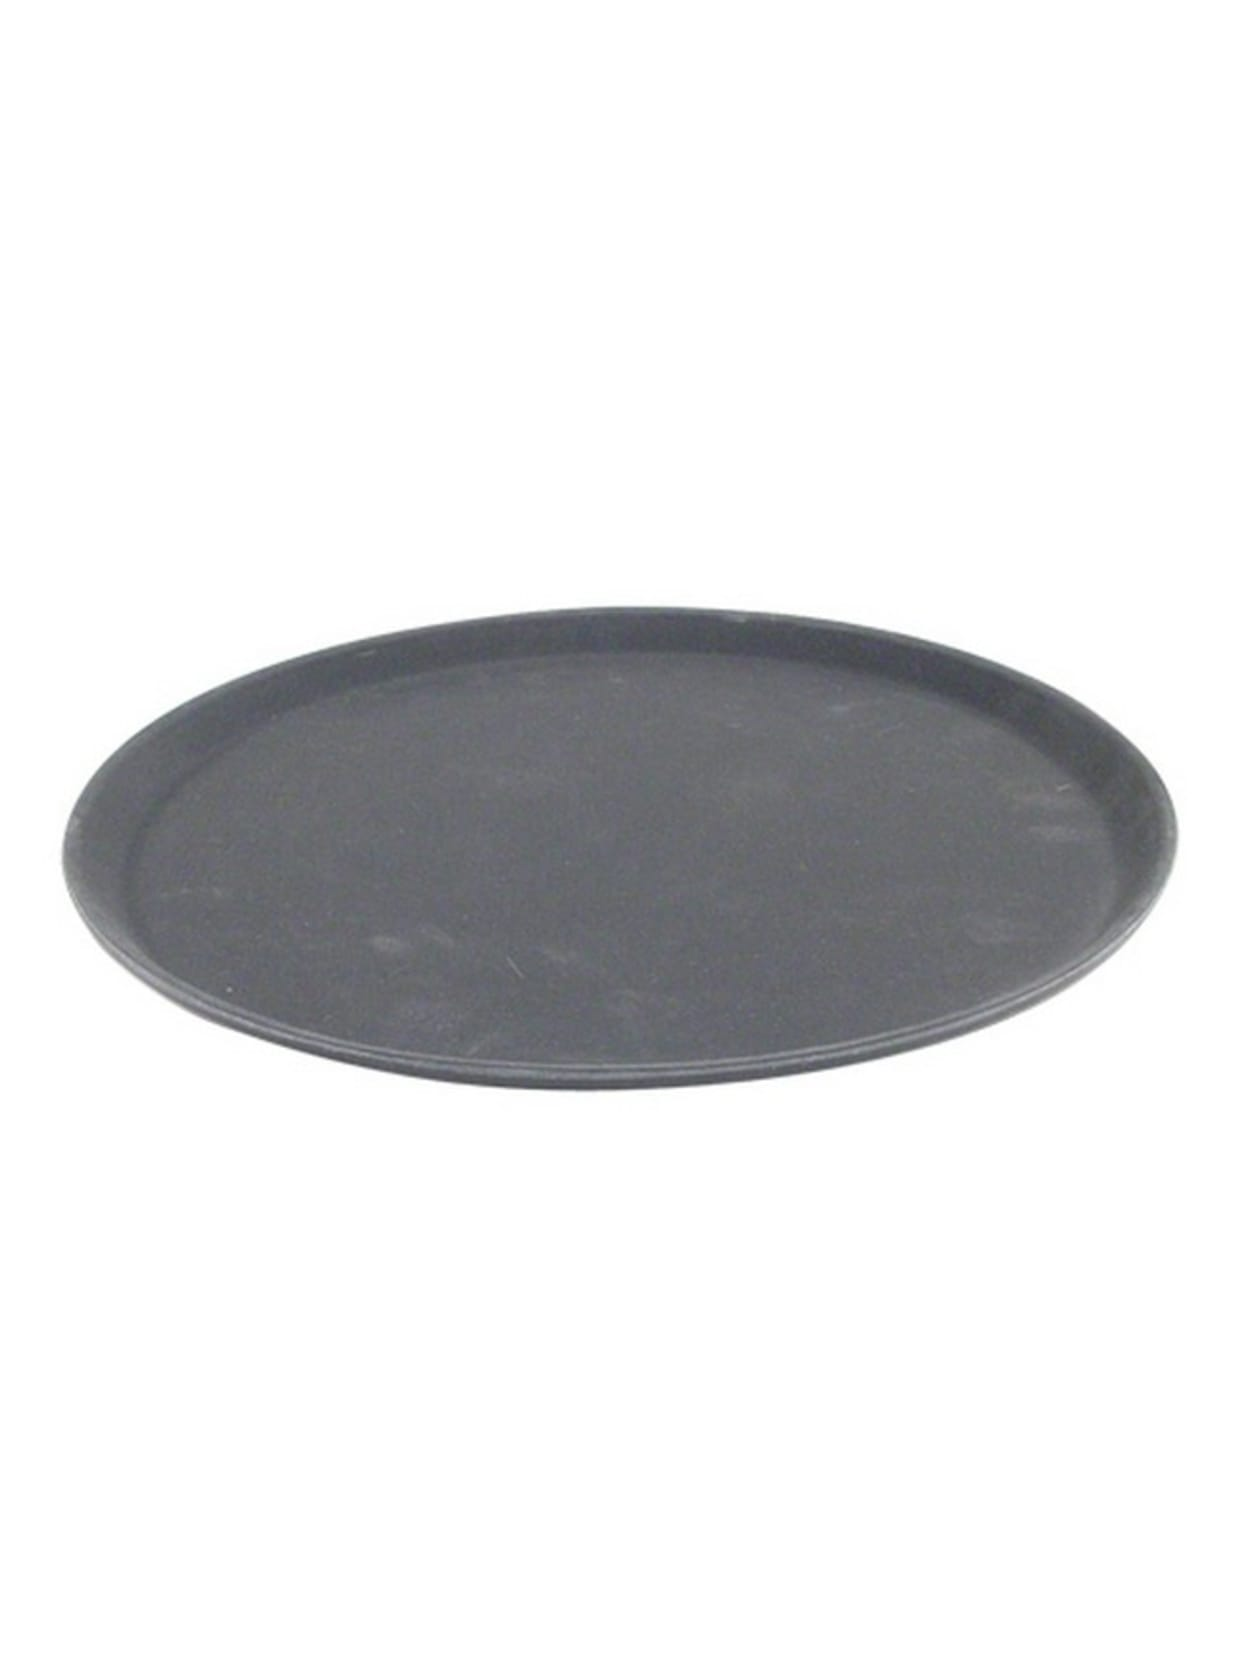 Carlisle Griptite 2 Round Serving Tray 14 Black Office Depot